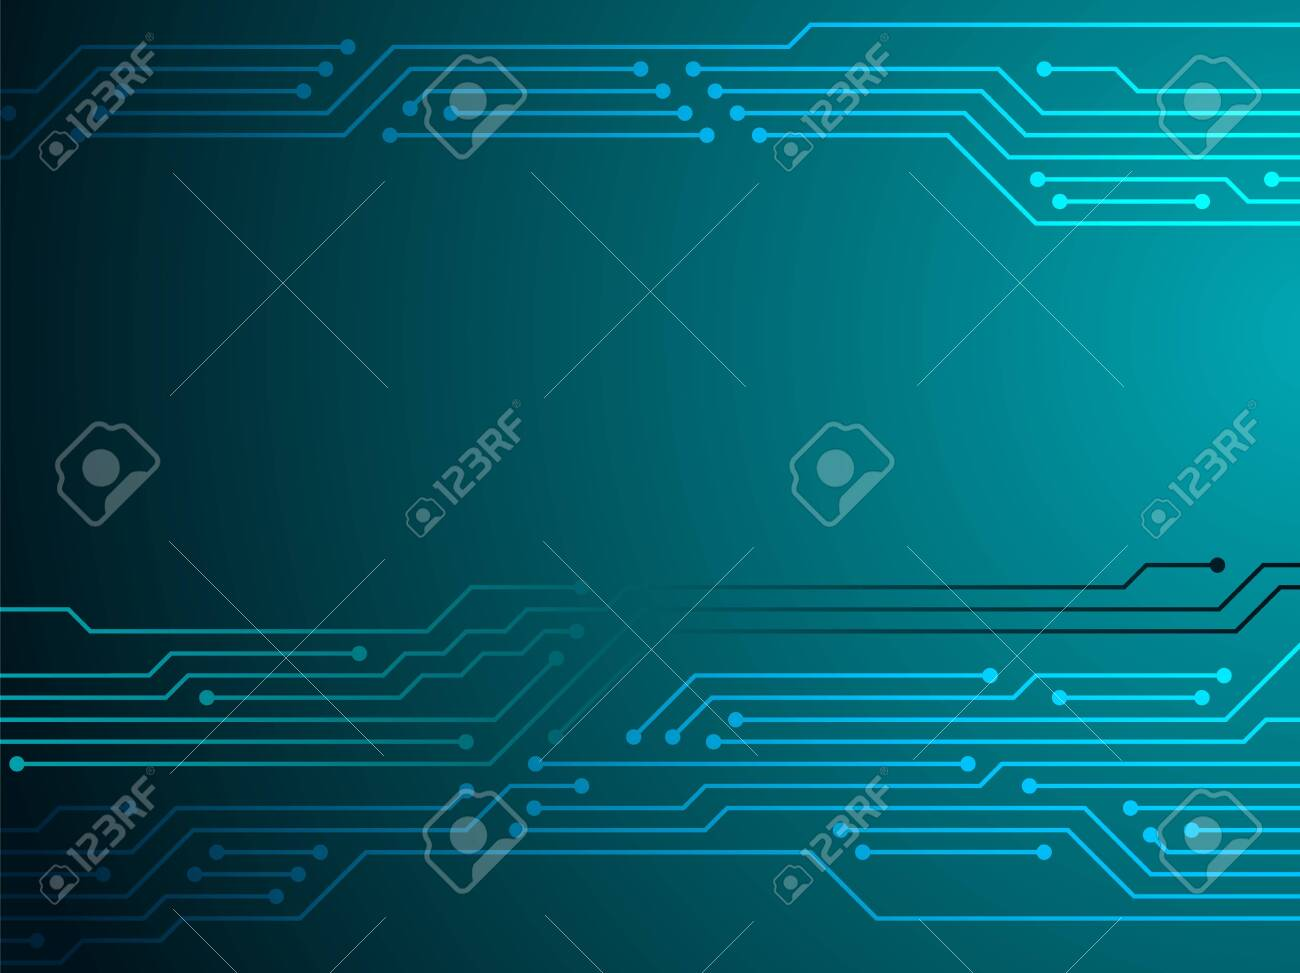 side vector circboard wiring diagram circuit board or motherboard texture vector background graphic  texture vector background graphic